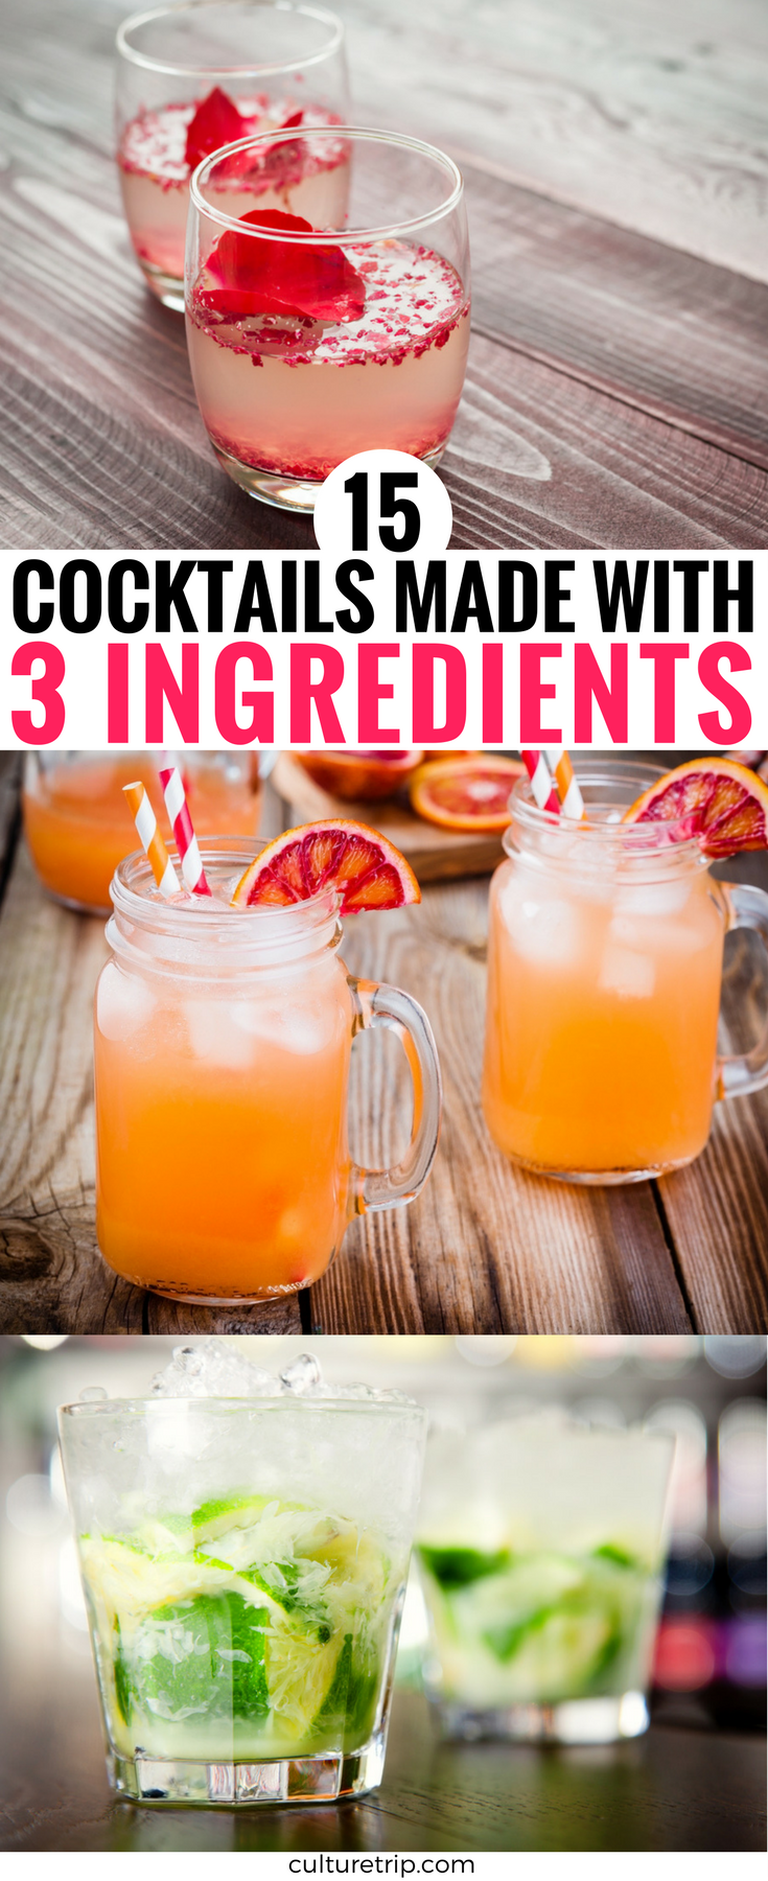 15 Stylish Cocktails Made Only With 3 Ingredients |©Culture Trip